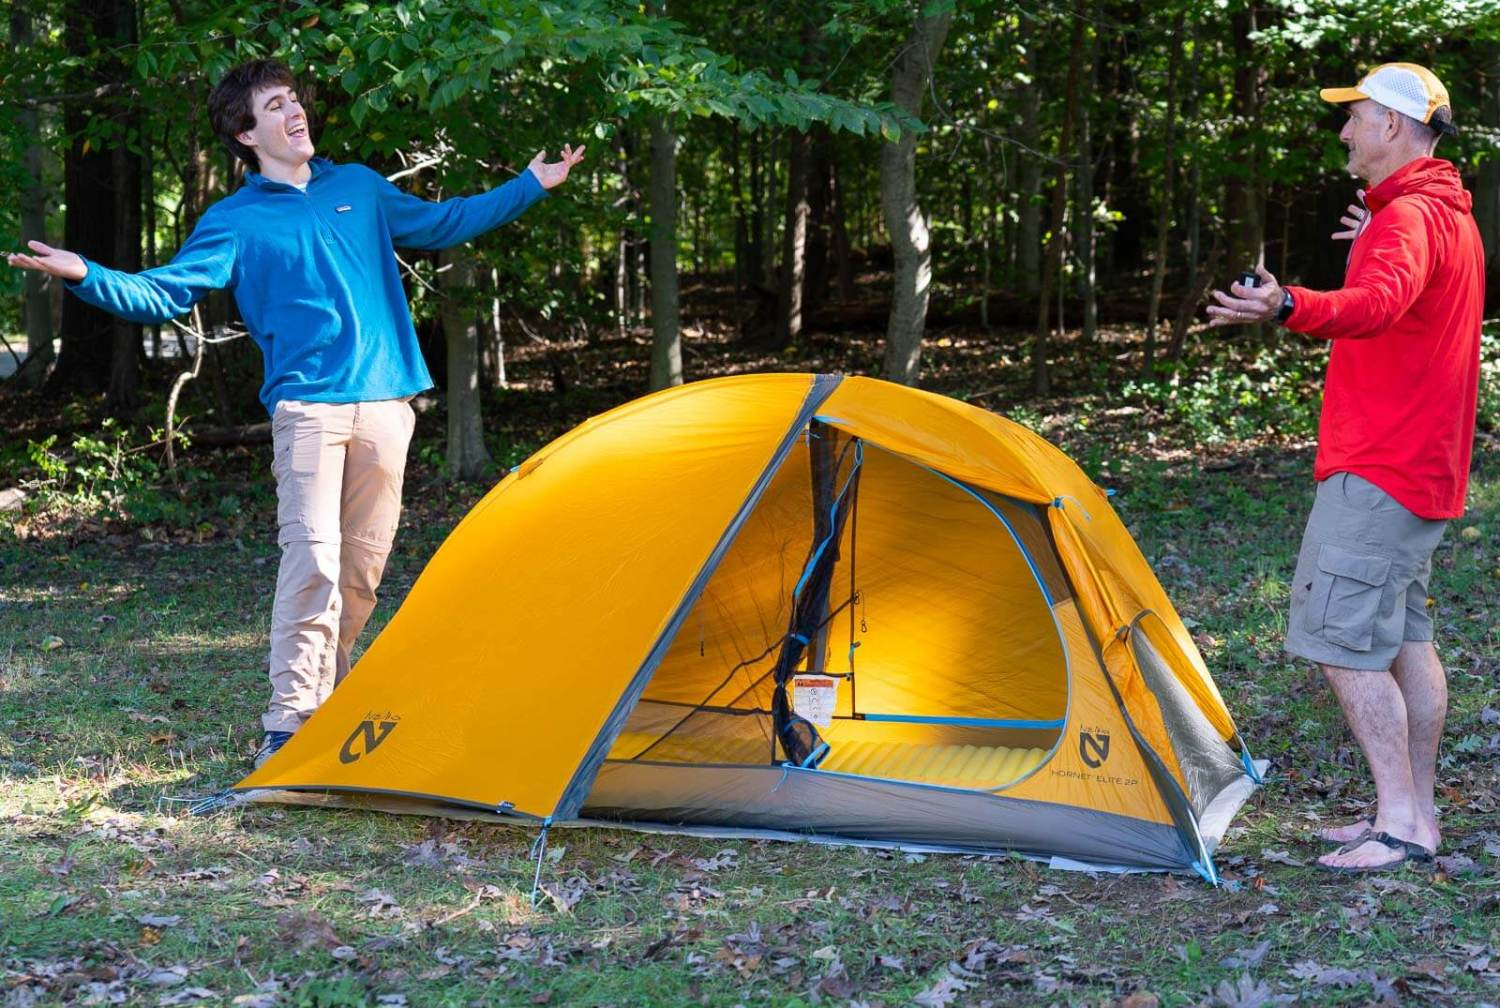 best backpacking tents - NEMO HORNET 2P Tent